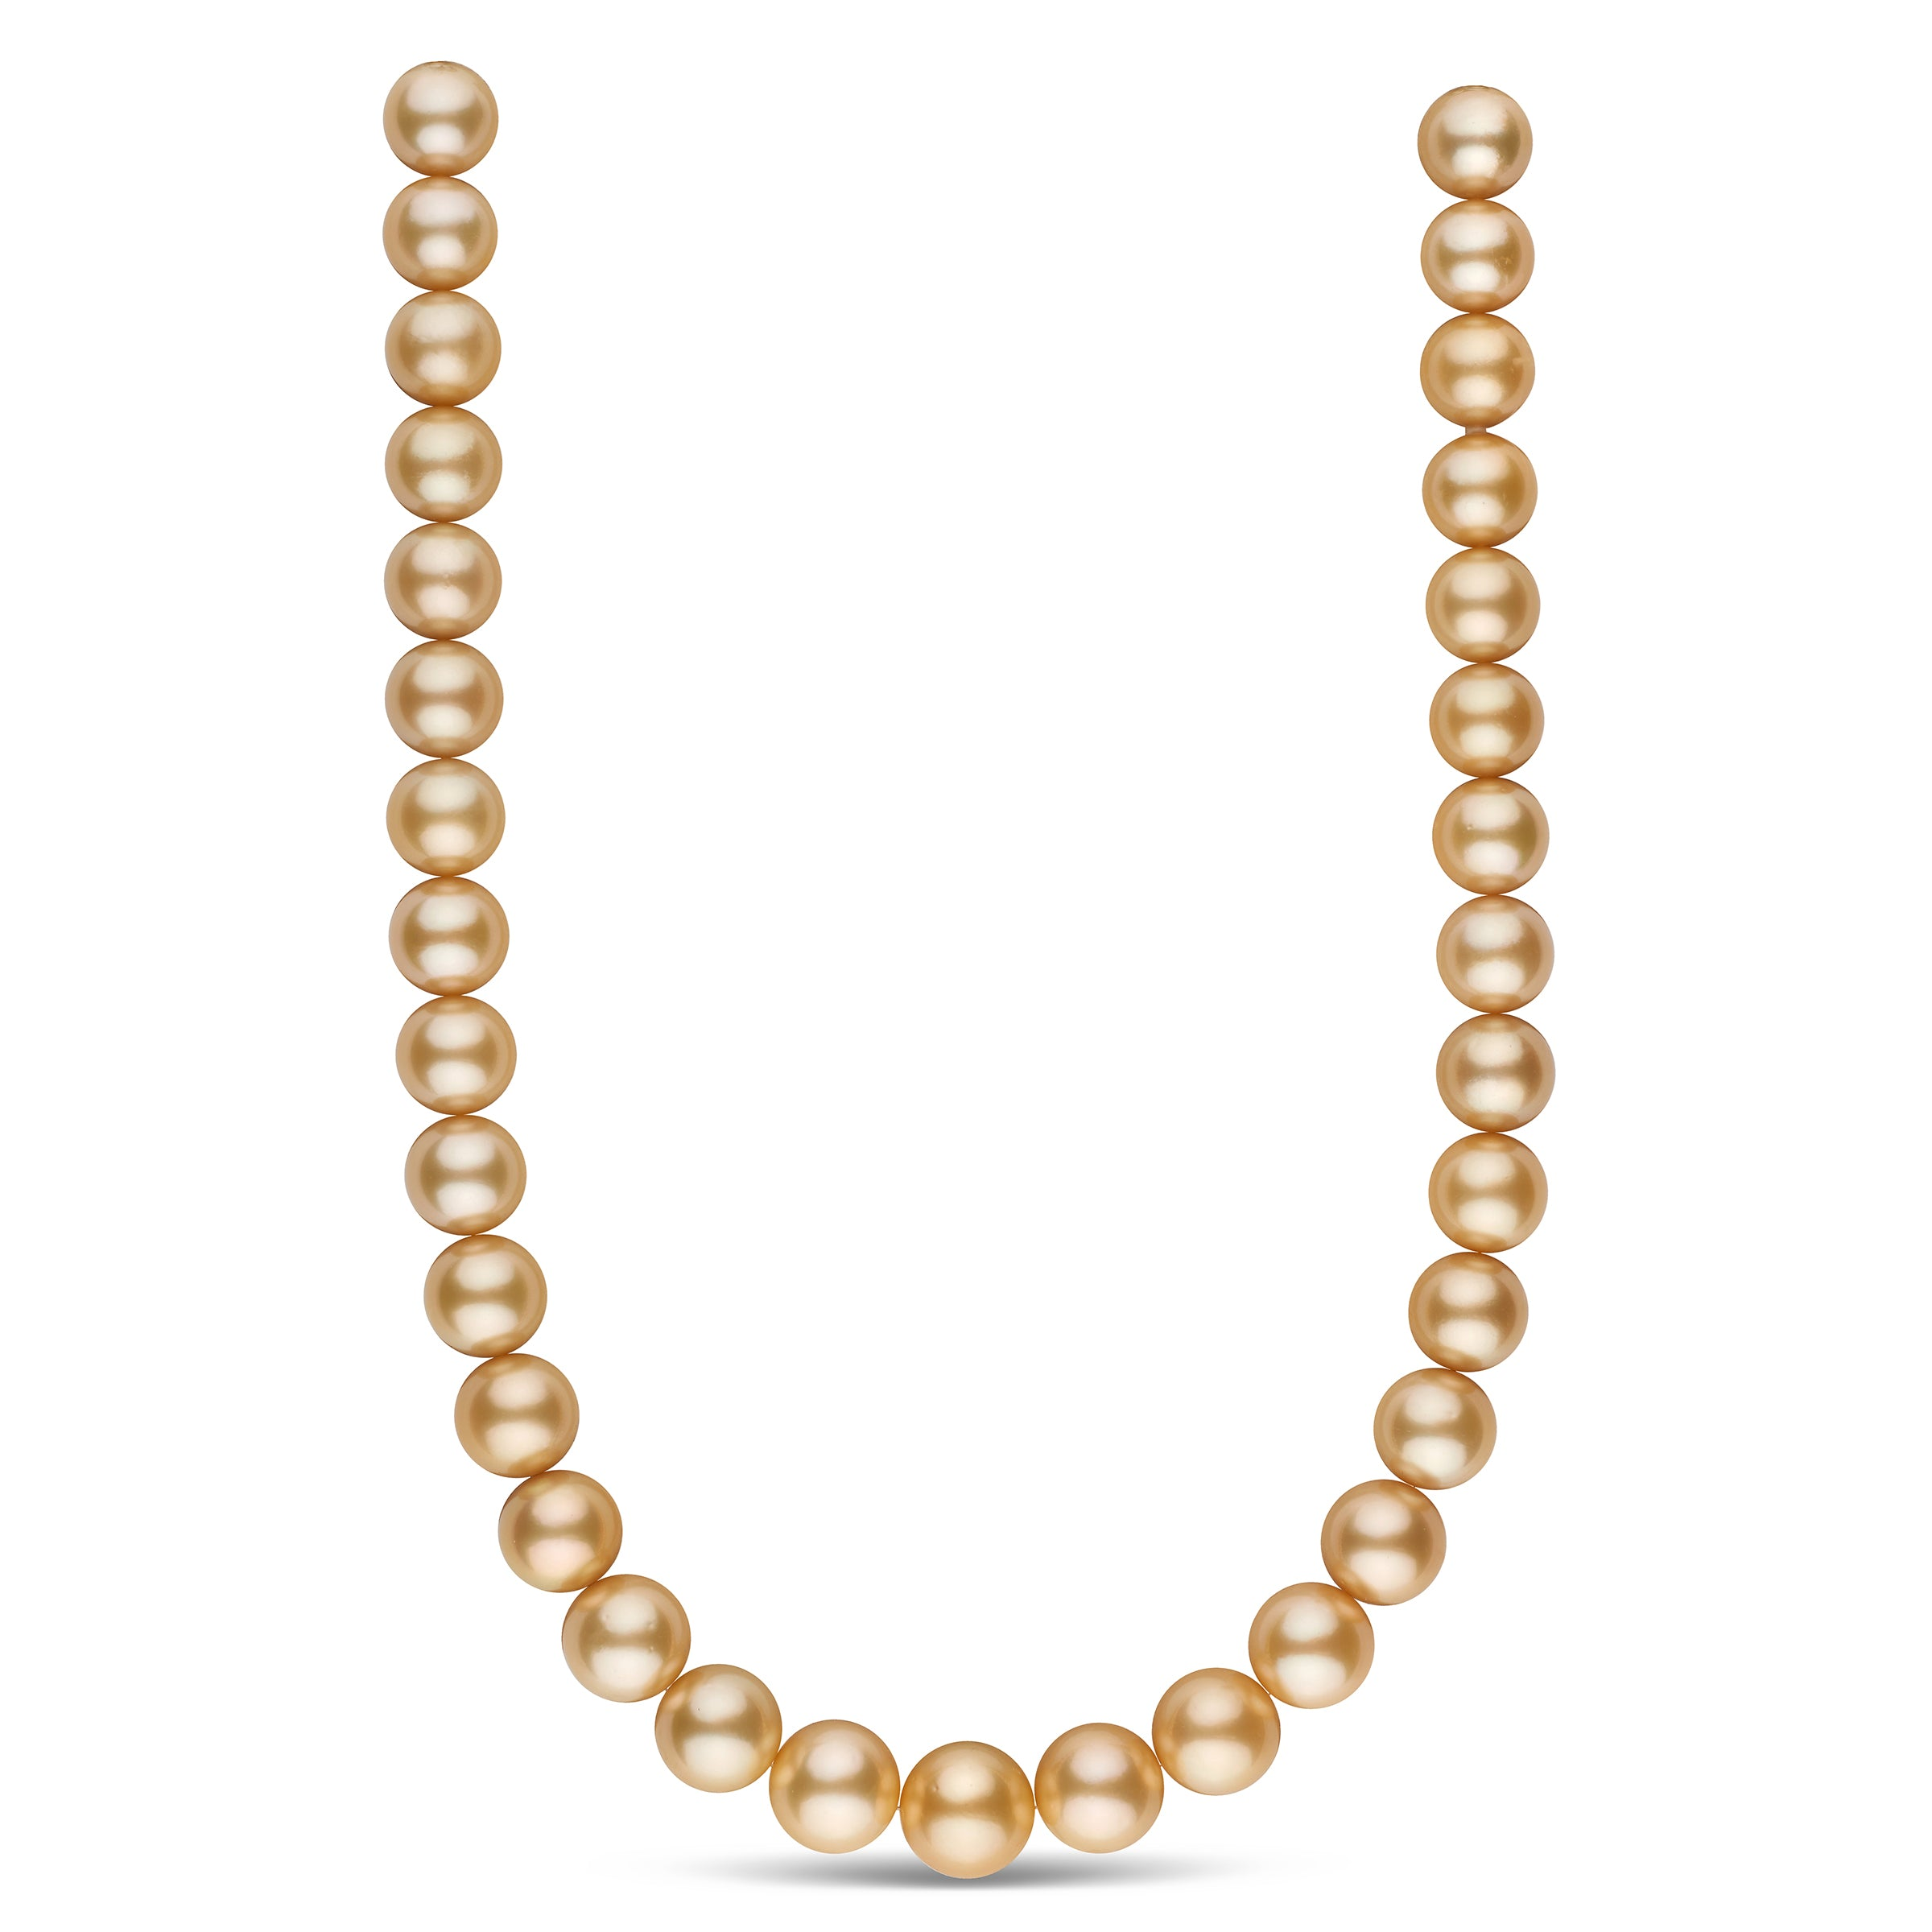 The Elizabeth Taylor Golden South Sea Pearl Necklace